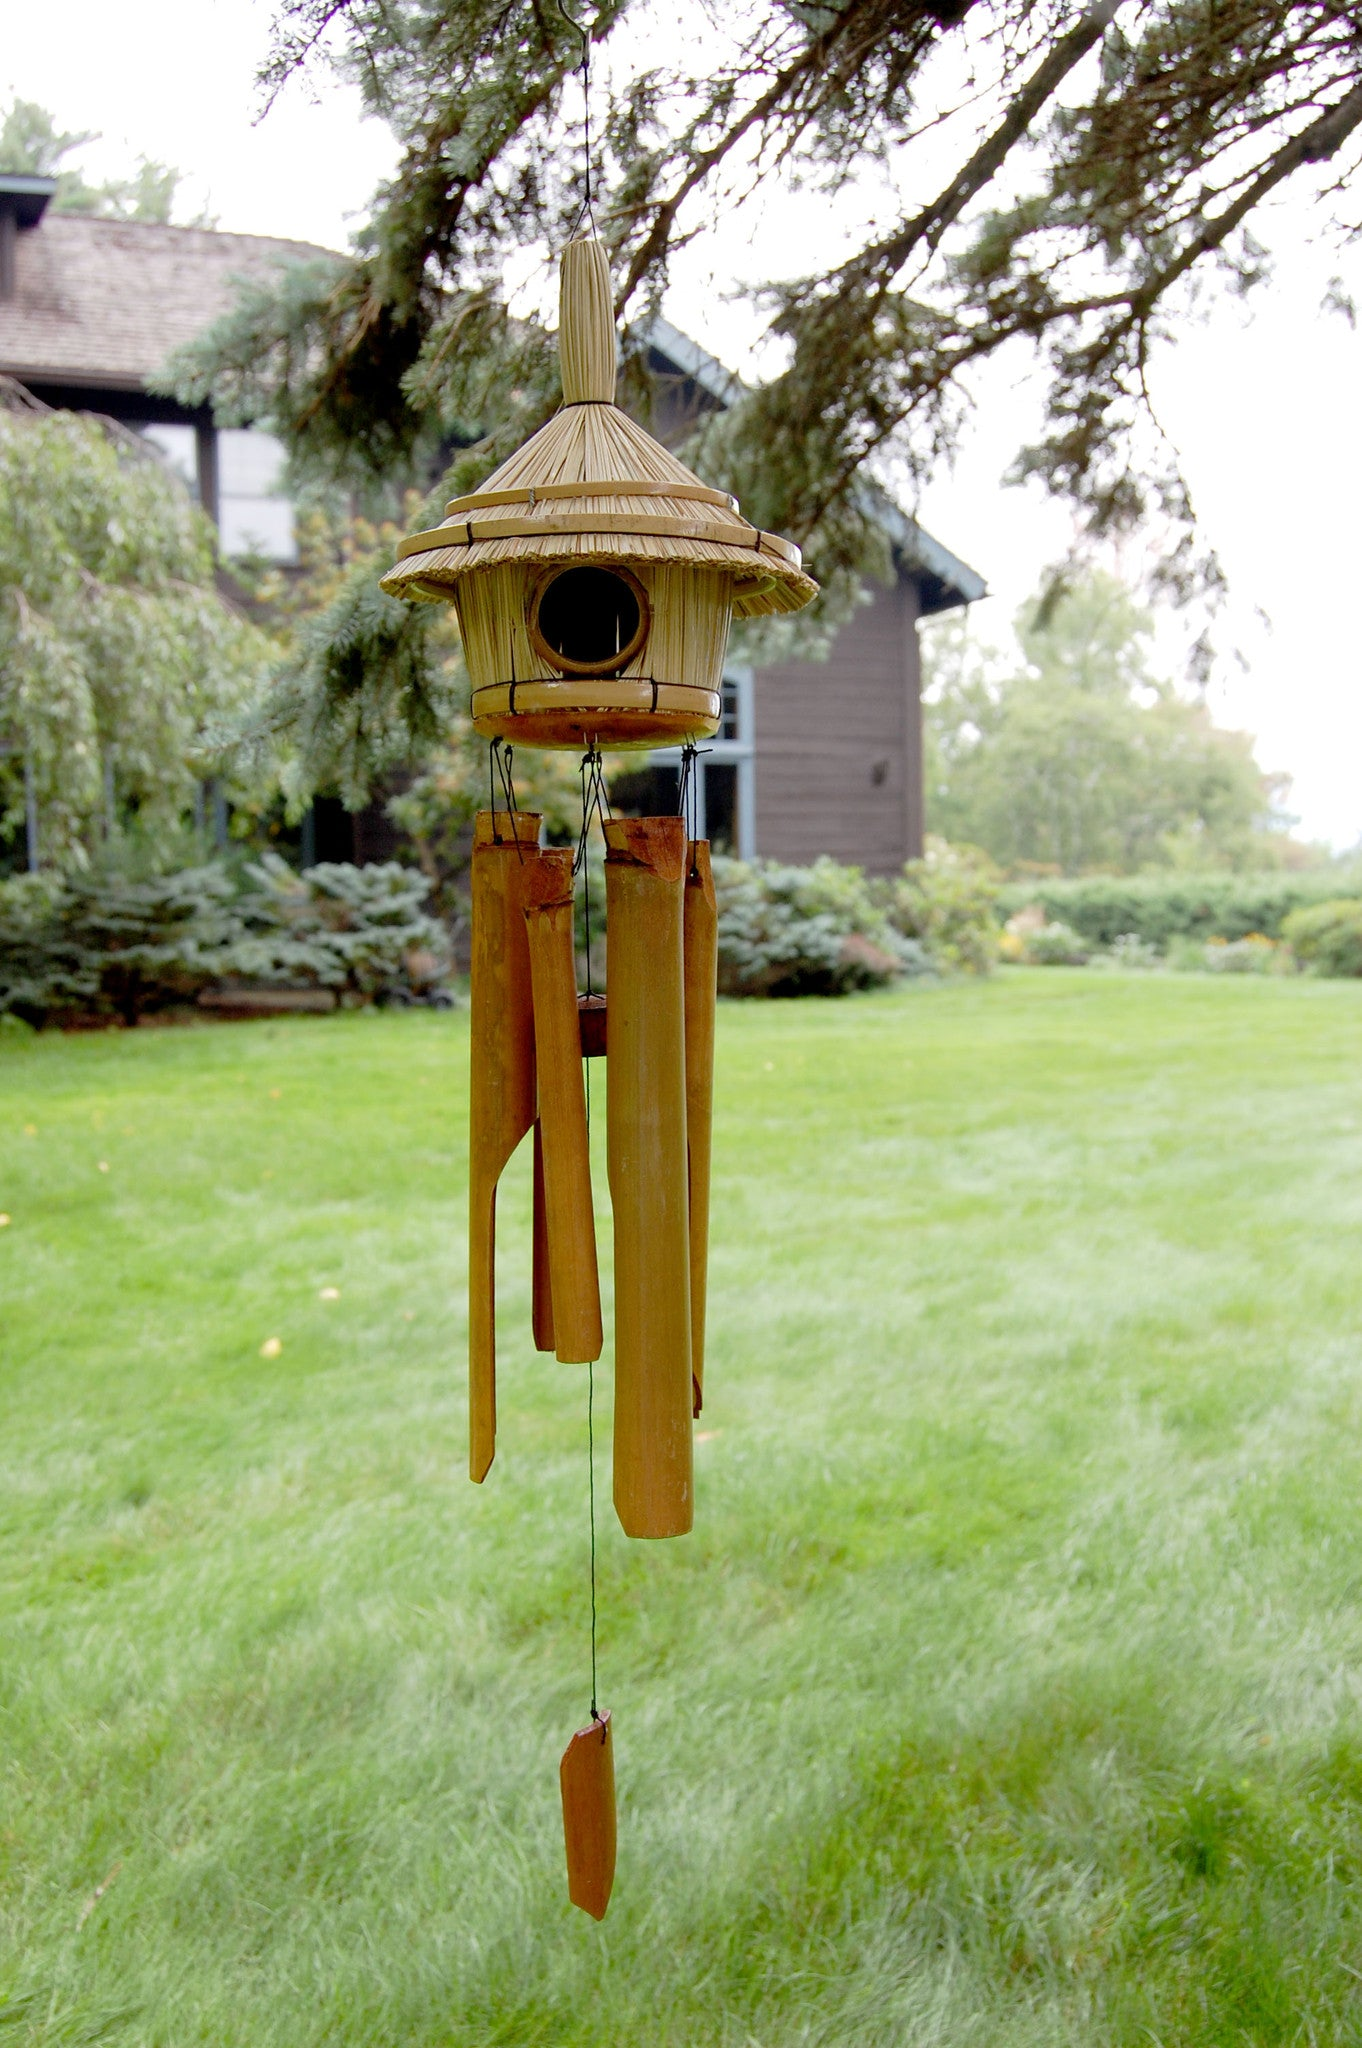 Woodstock Thatched Roof Birdhouse Bamboo Chime C707